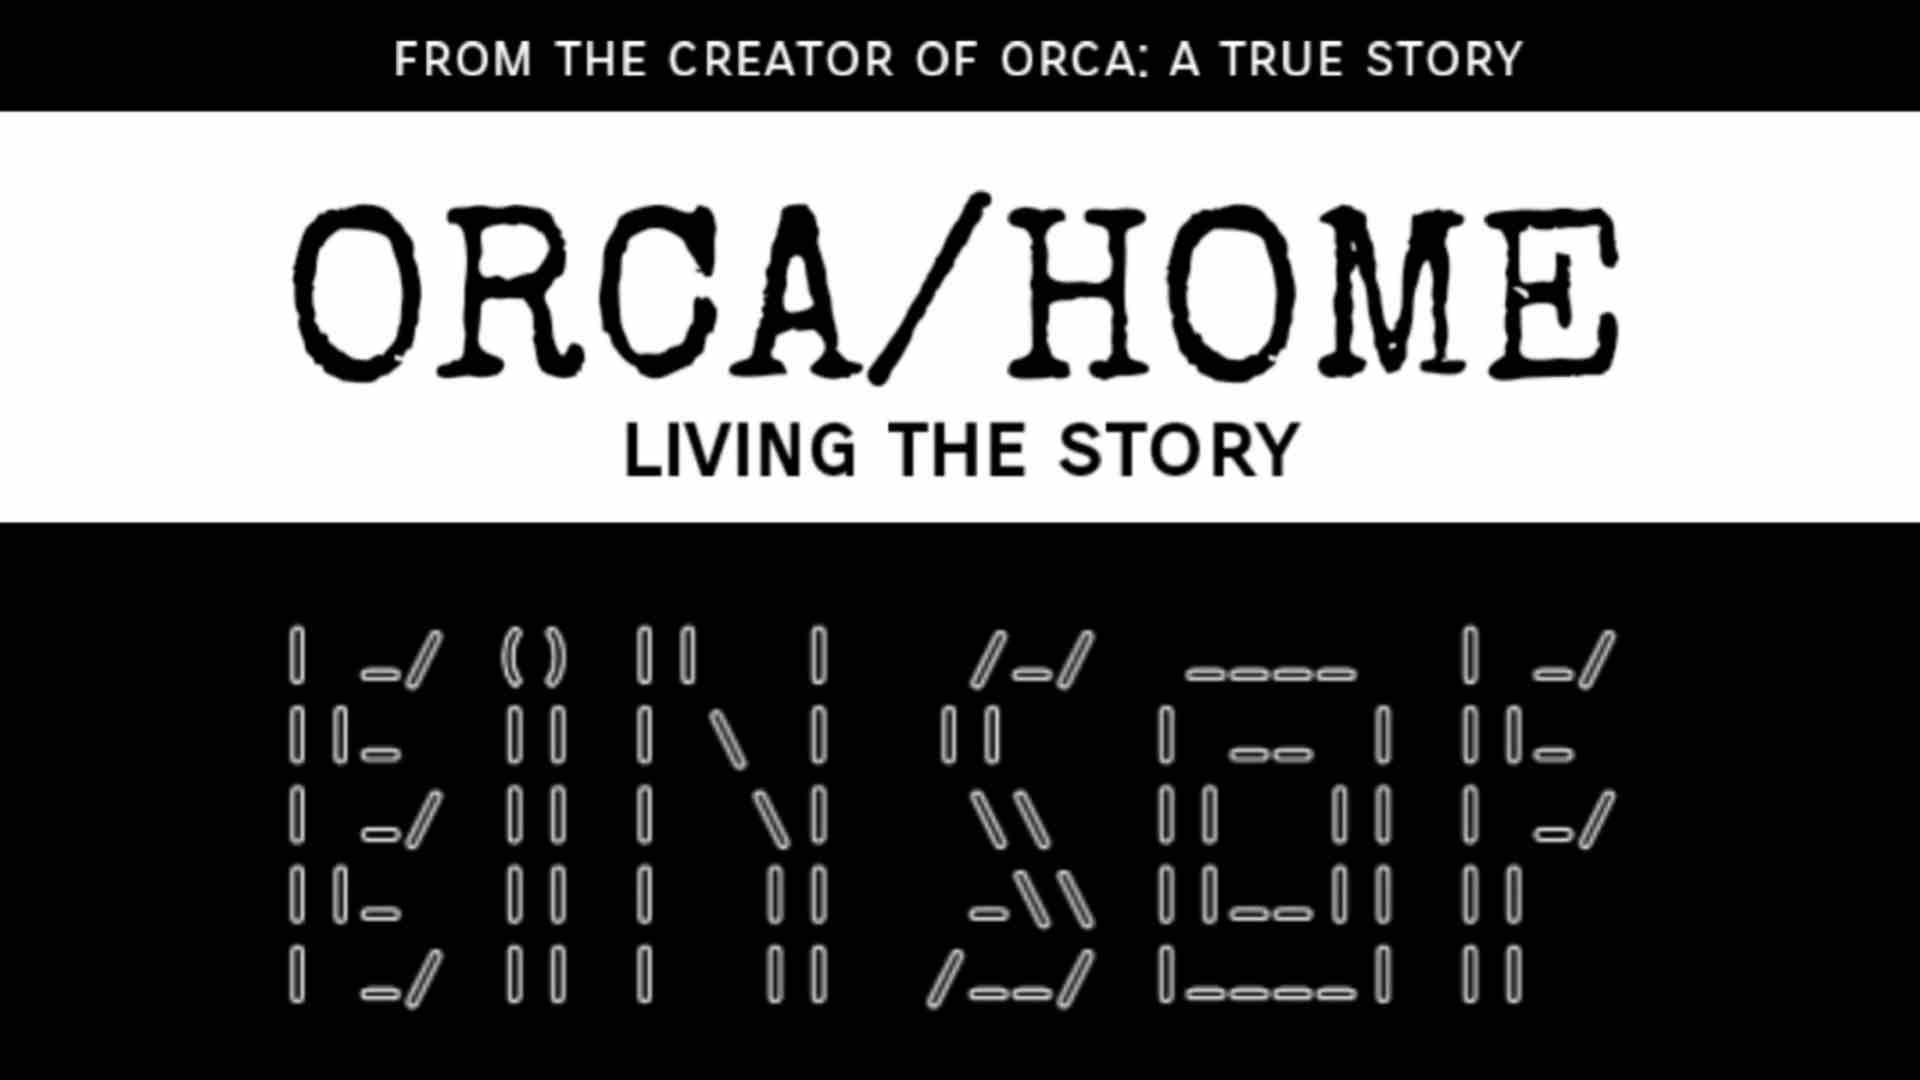 Orca: Home, Living the Story (2019)